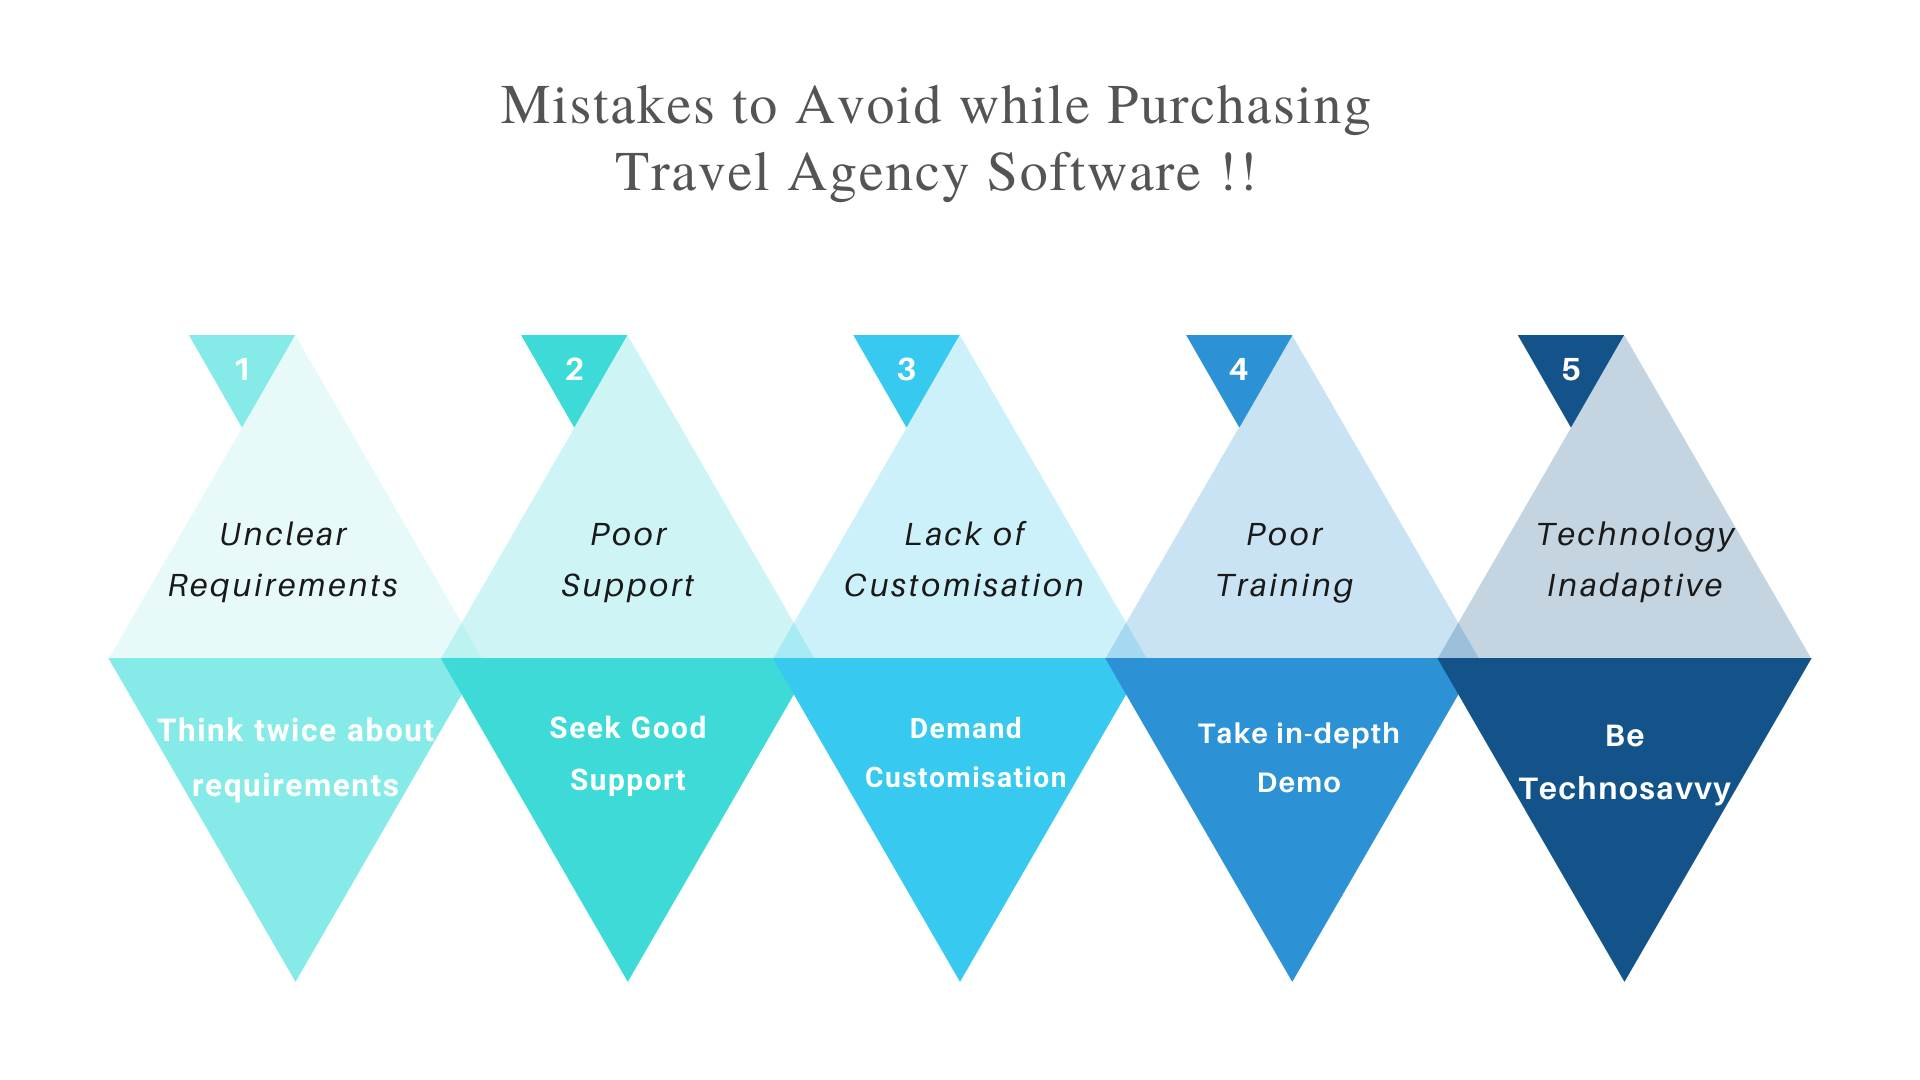 7 Most common mistakes to avoid while purchasing travel agency software!